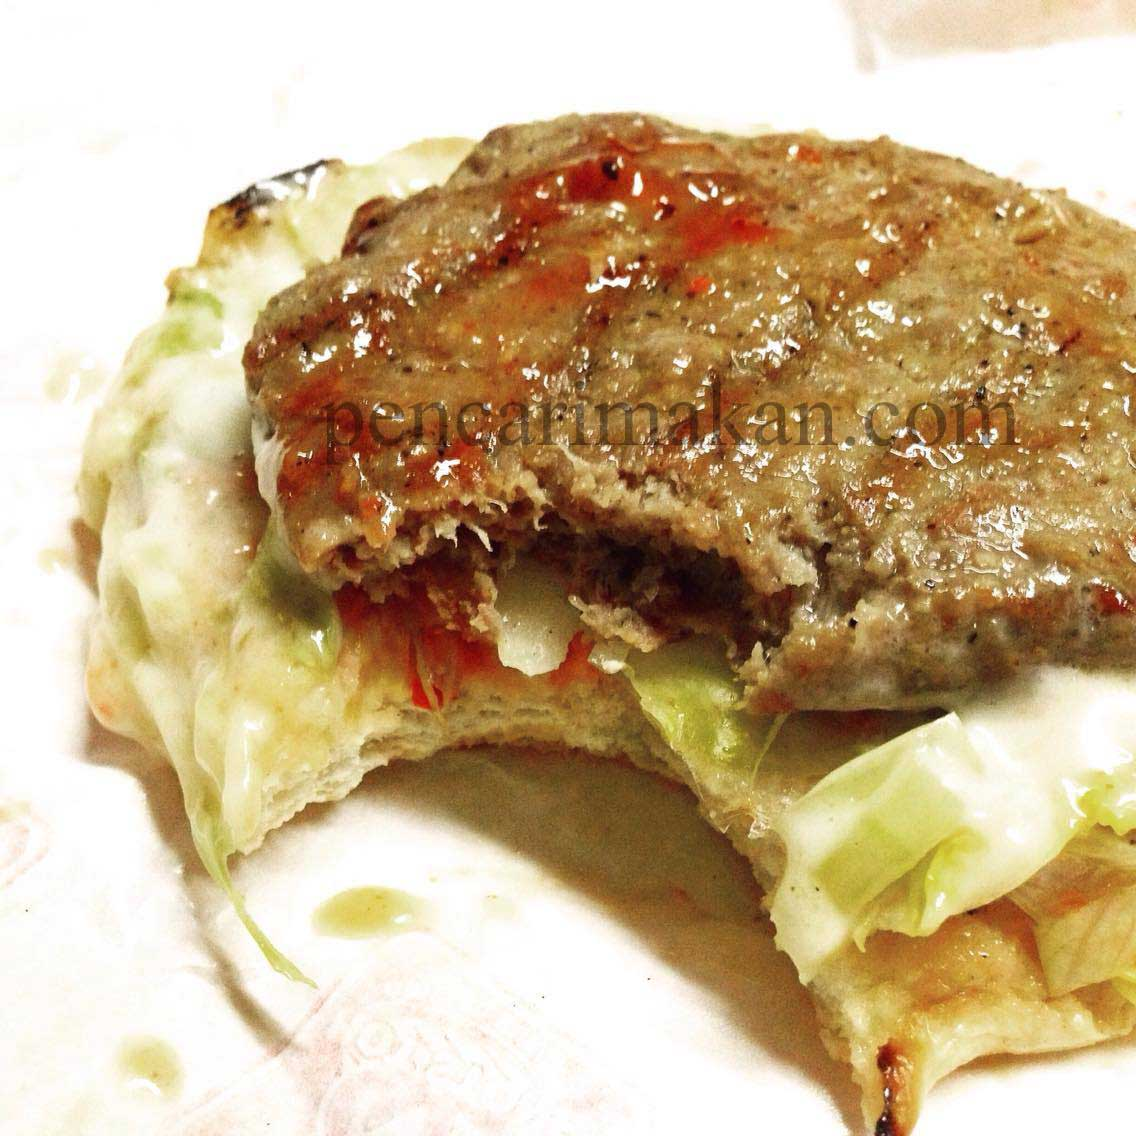 kambing-burger-bakar-hot-stone-paper-bag-Nz-hot-stone-burger-bakar-grill-burger